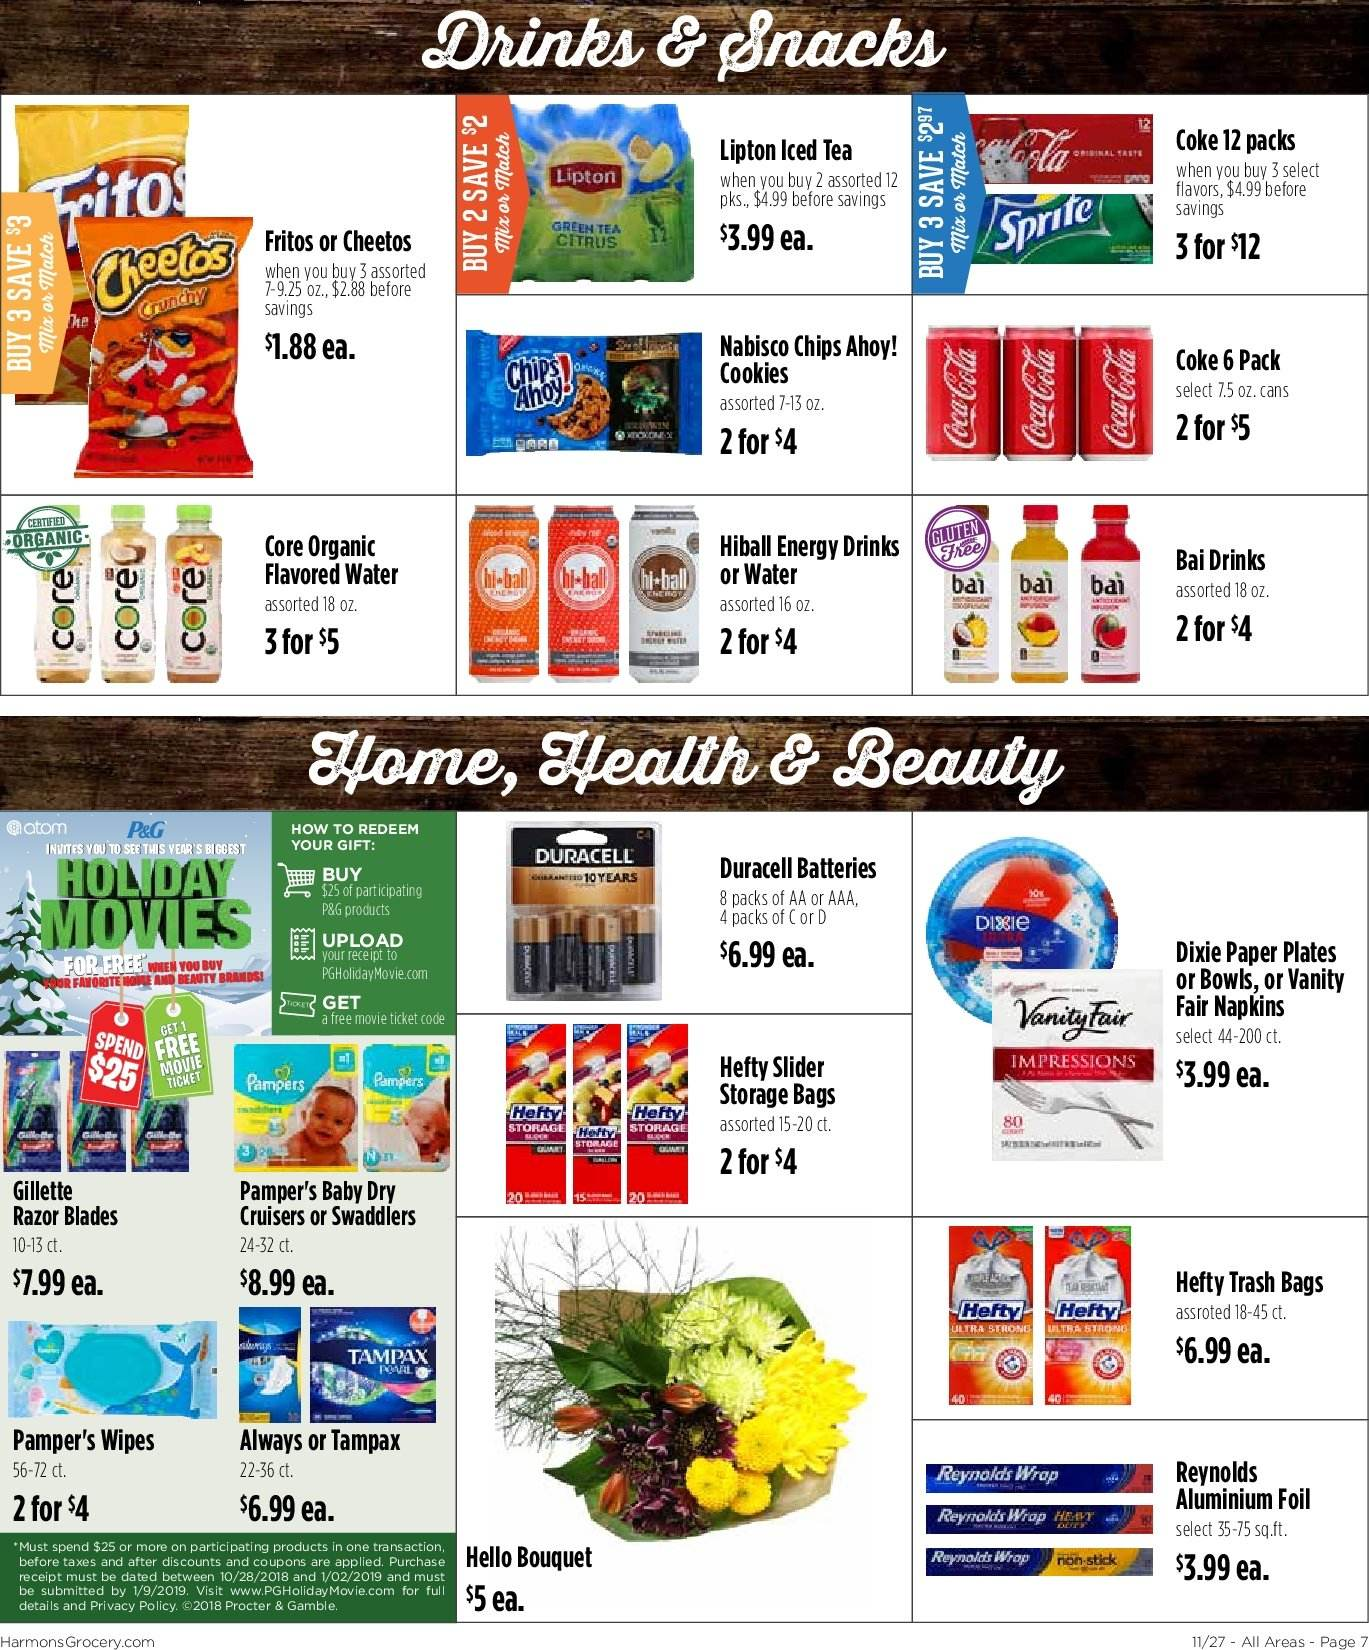 Harmons Flyer - 11.27.2018 - 12.03.2018 - Sales products - aluminium foil, bag, battery, bowl, cookies, duracell, fritos, gillette, green tea, razor, tampax, tea, trash bag, wipes, hefty, plate, cheetos, organic, chips, flavored water. Page 7.